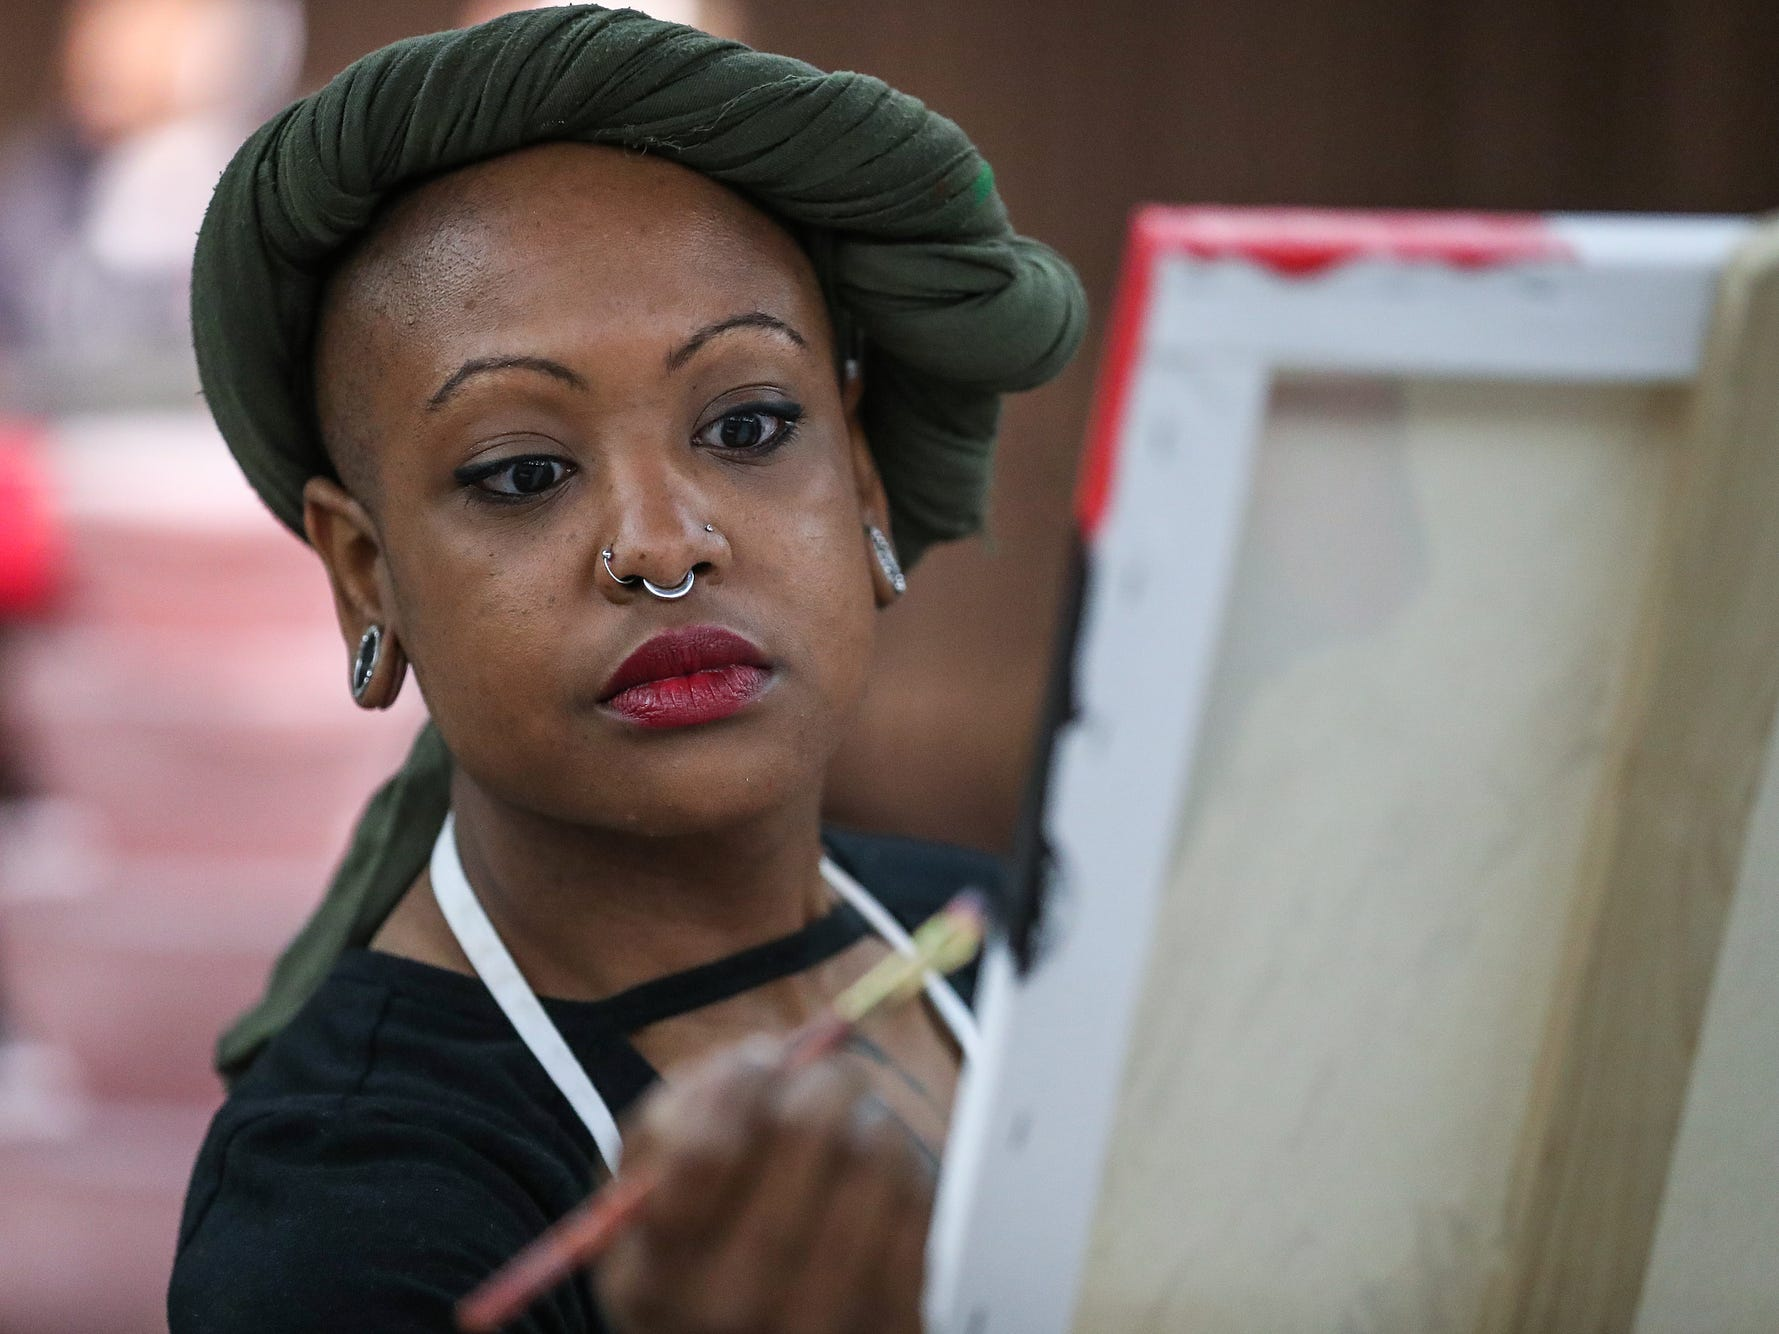 Artist Deonna Craig works on a painting during a market showcasing more than 65 women and minority-owned small businesses at the Murat Shrine Temple in Indianapolis, Saturday, Nov. 24, 2018. The fifth annual event is part of Small Business Saturday, launched nationally by American Express eight years ago to help independently owned businesses bounce back from the recession.